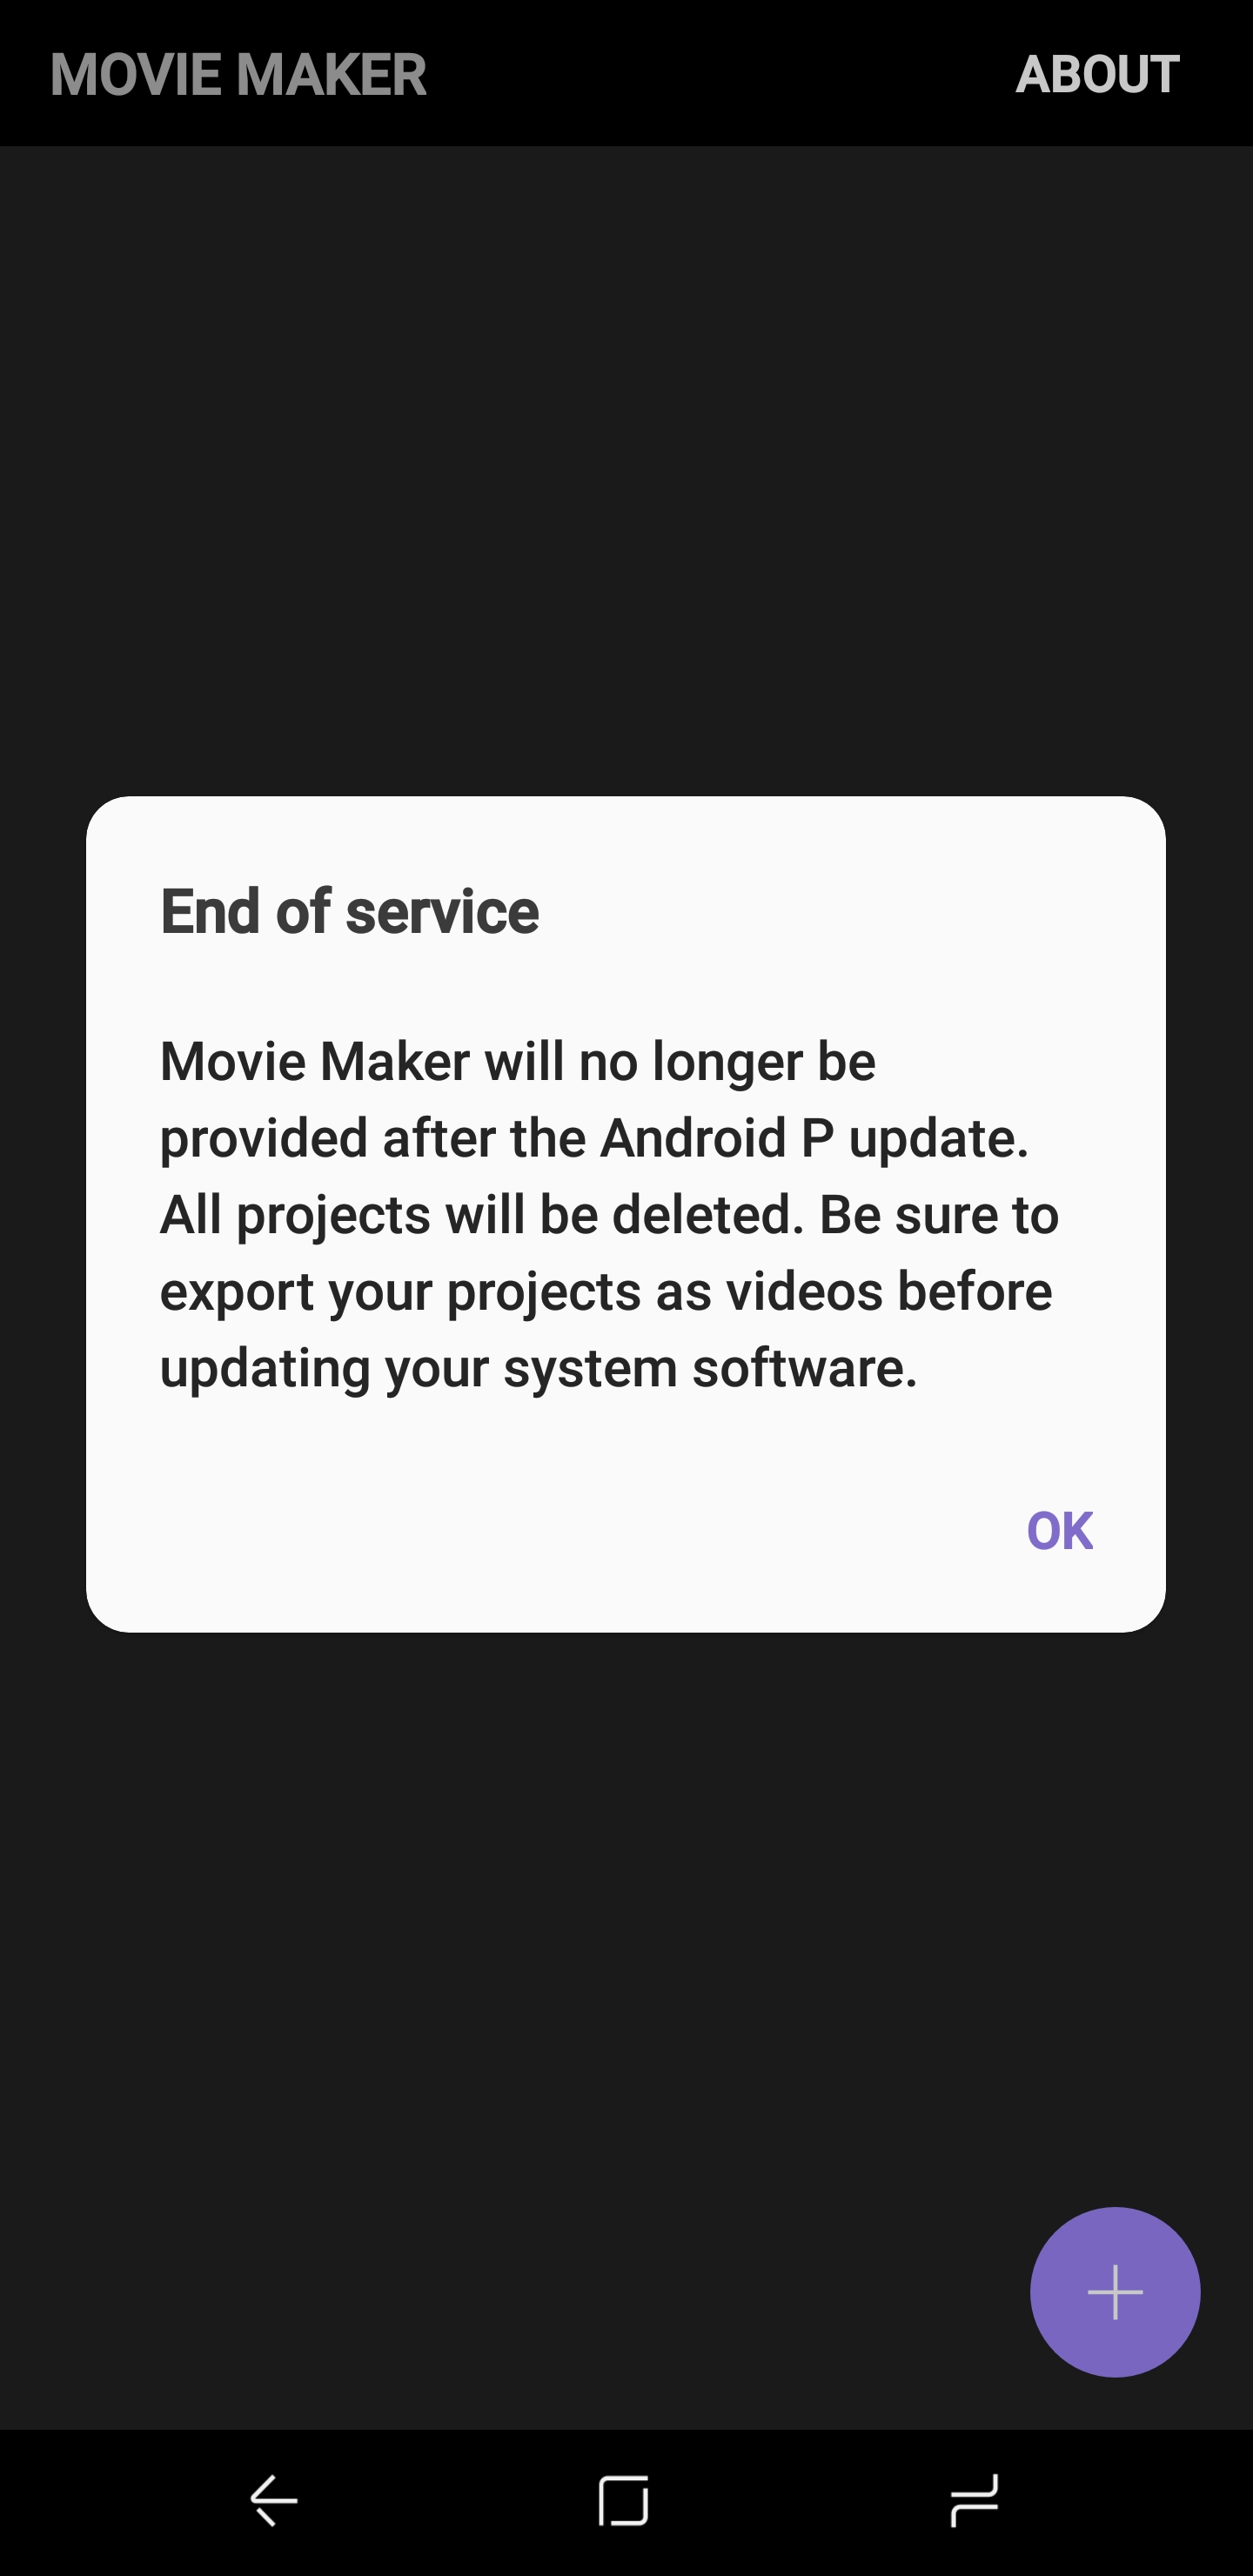 Samsung Movie Maker To Be Discontinued After Android P Update